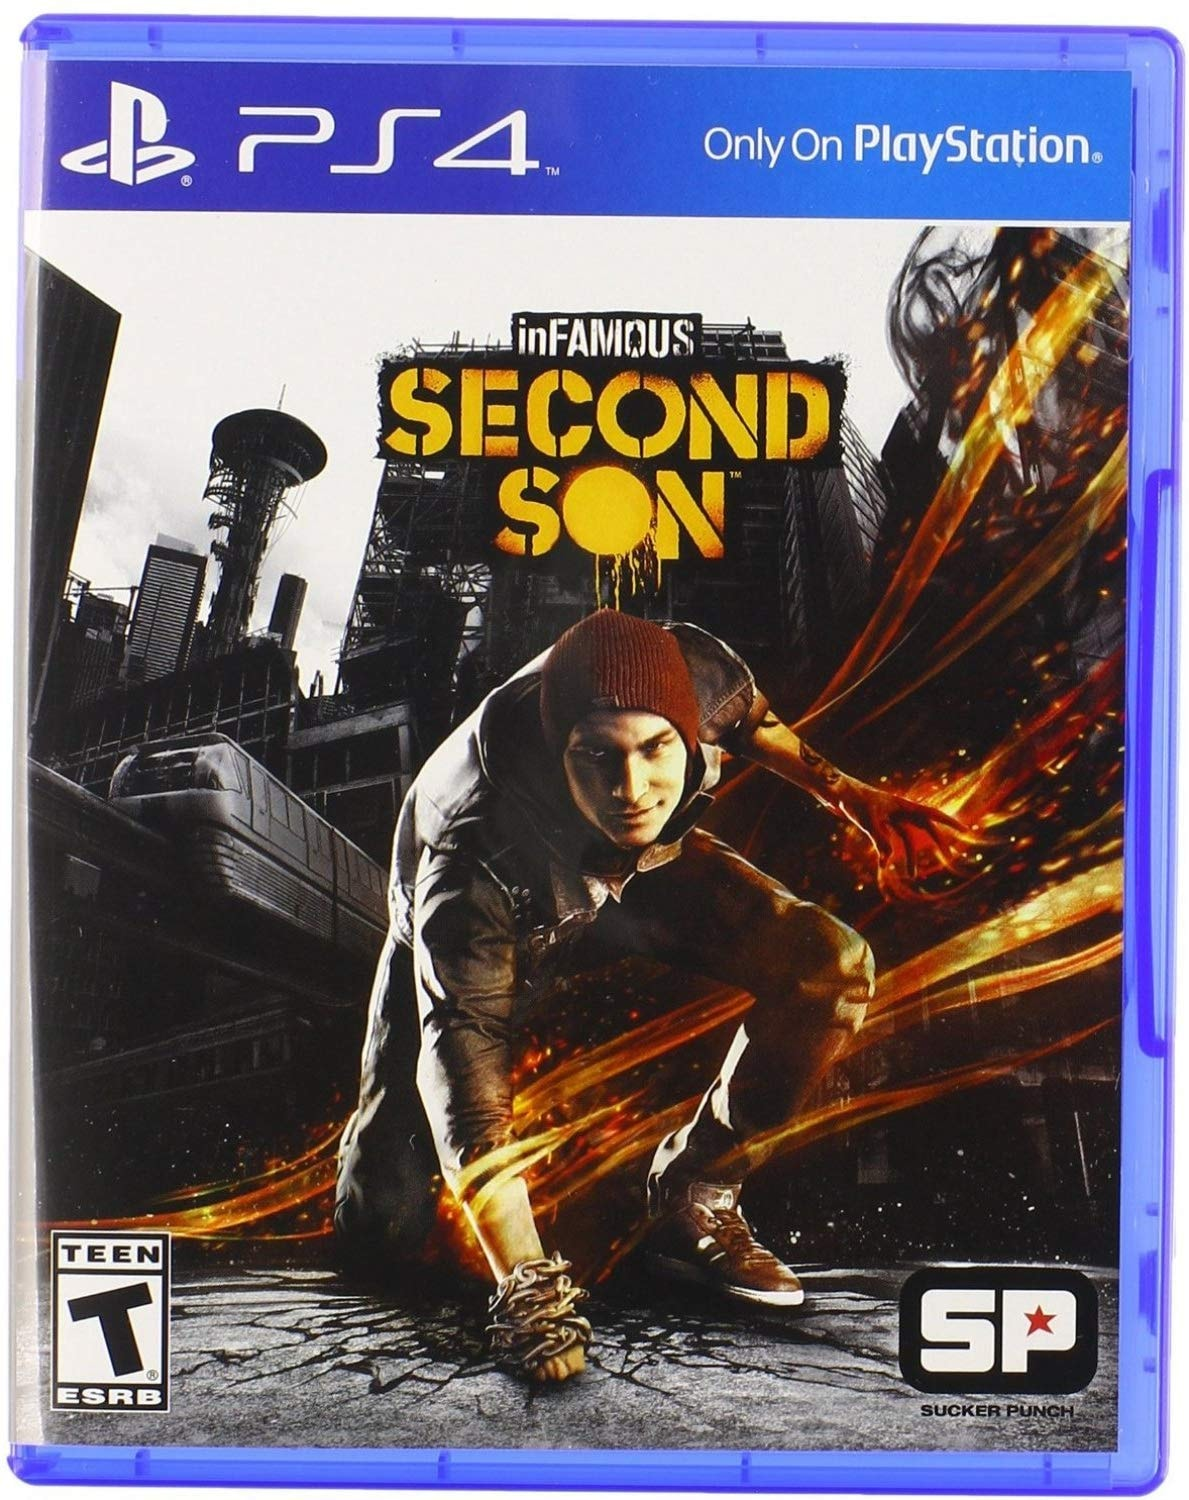 PS4 INFAMOUS SECOND SON R3 - 1